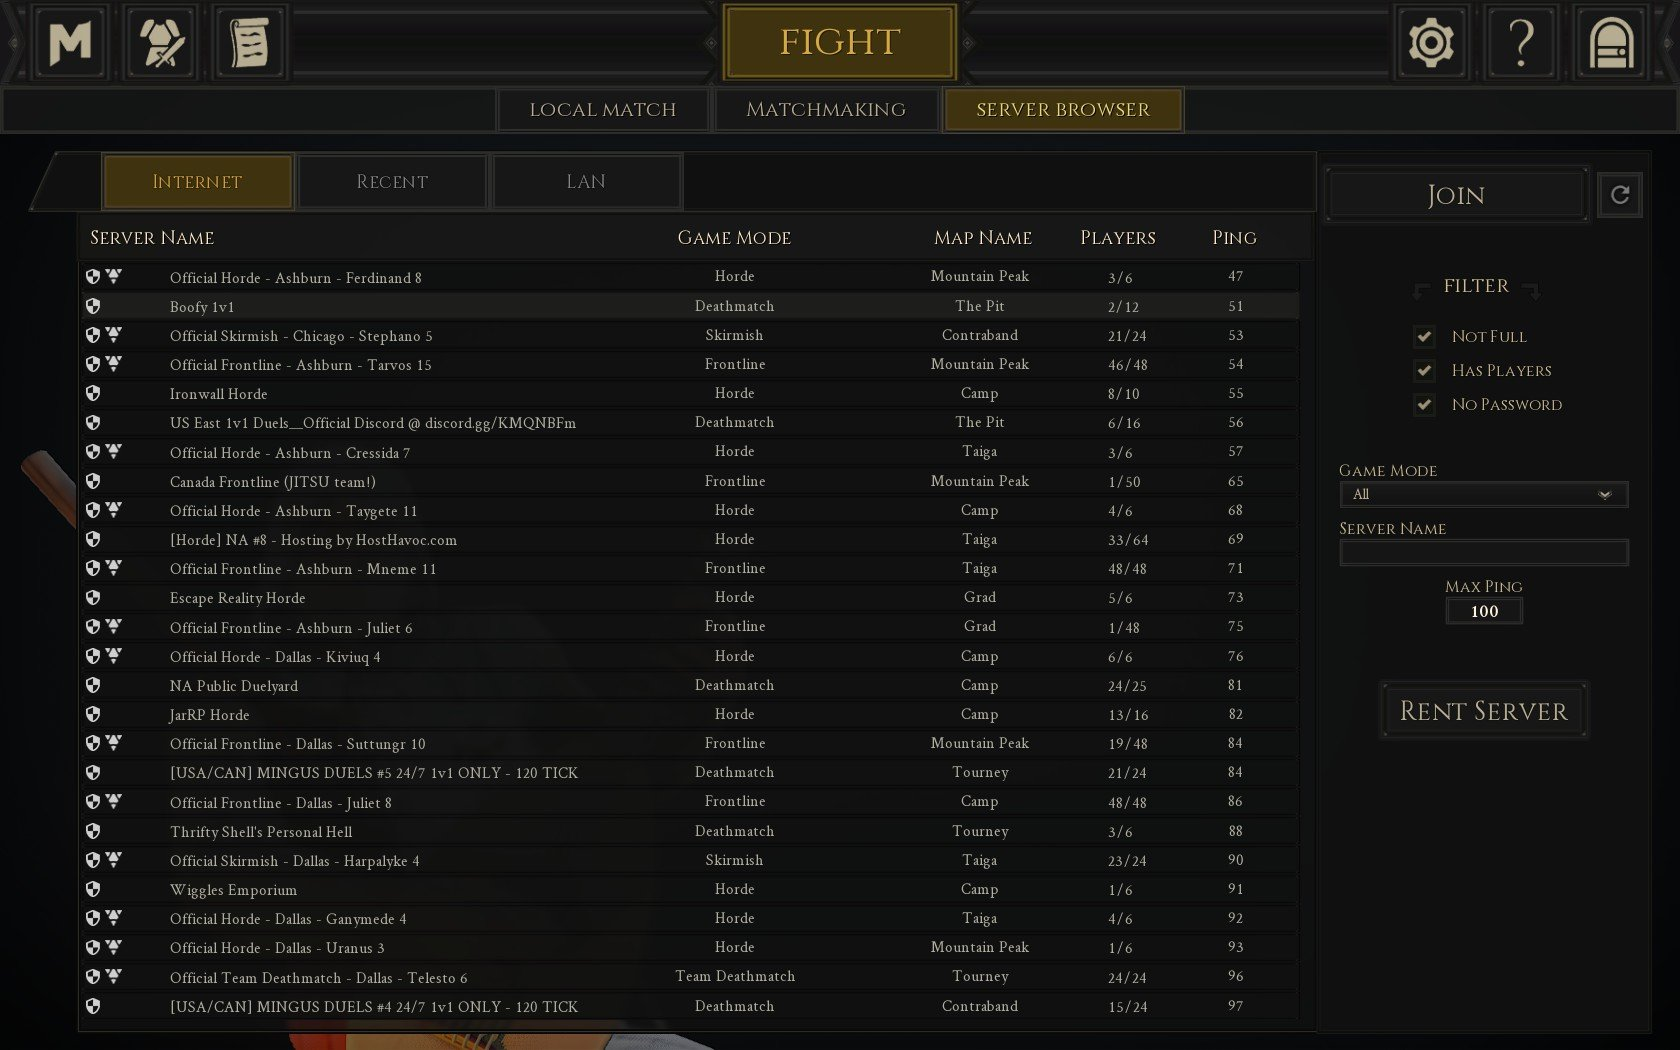 In the Server Browser tab, you'll find game mode options including Skirmish, Deathmatch, Team Deathmatch, Duels, and other misc options in Mordhau.